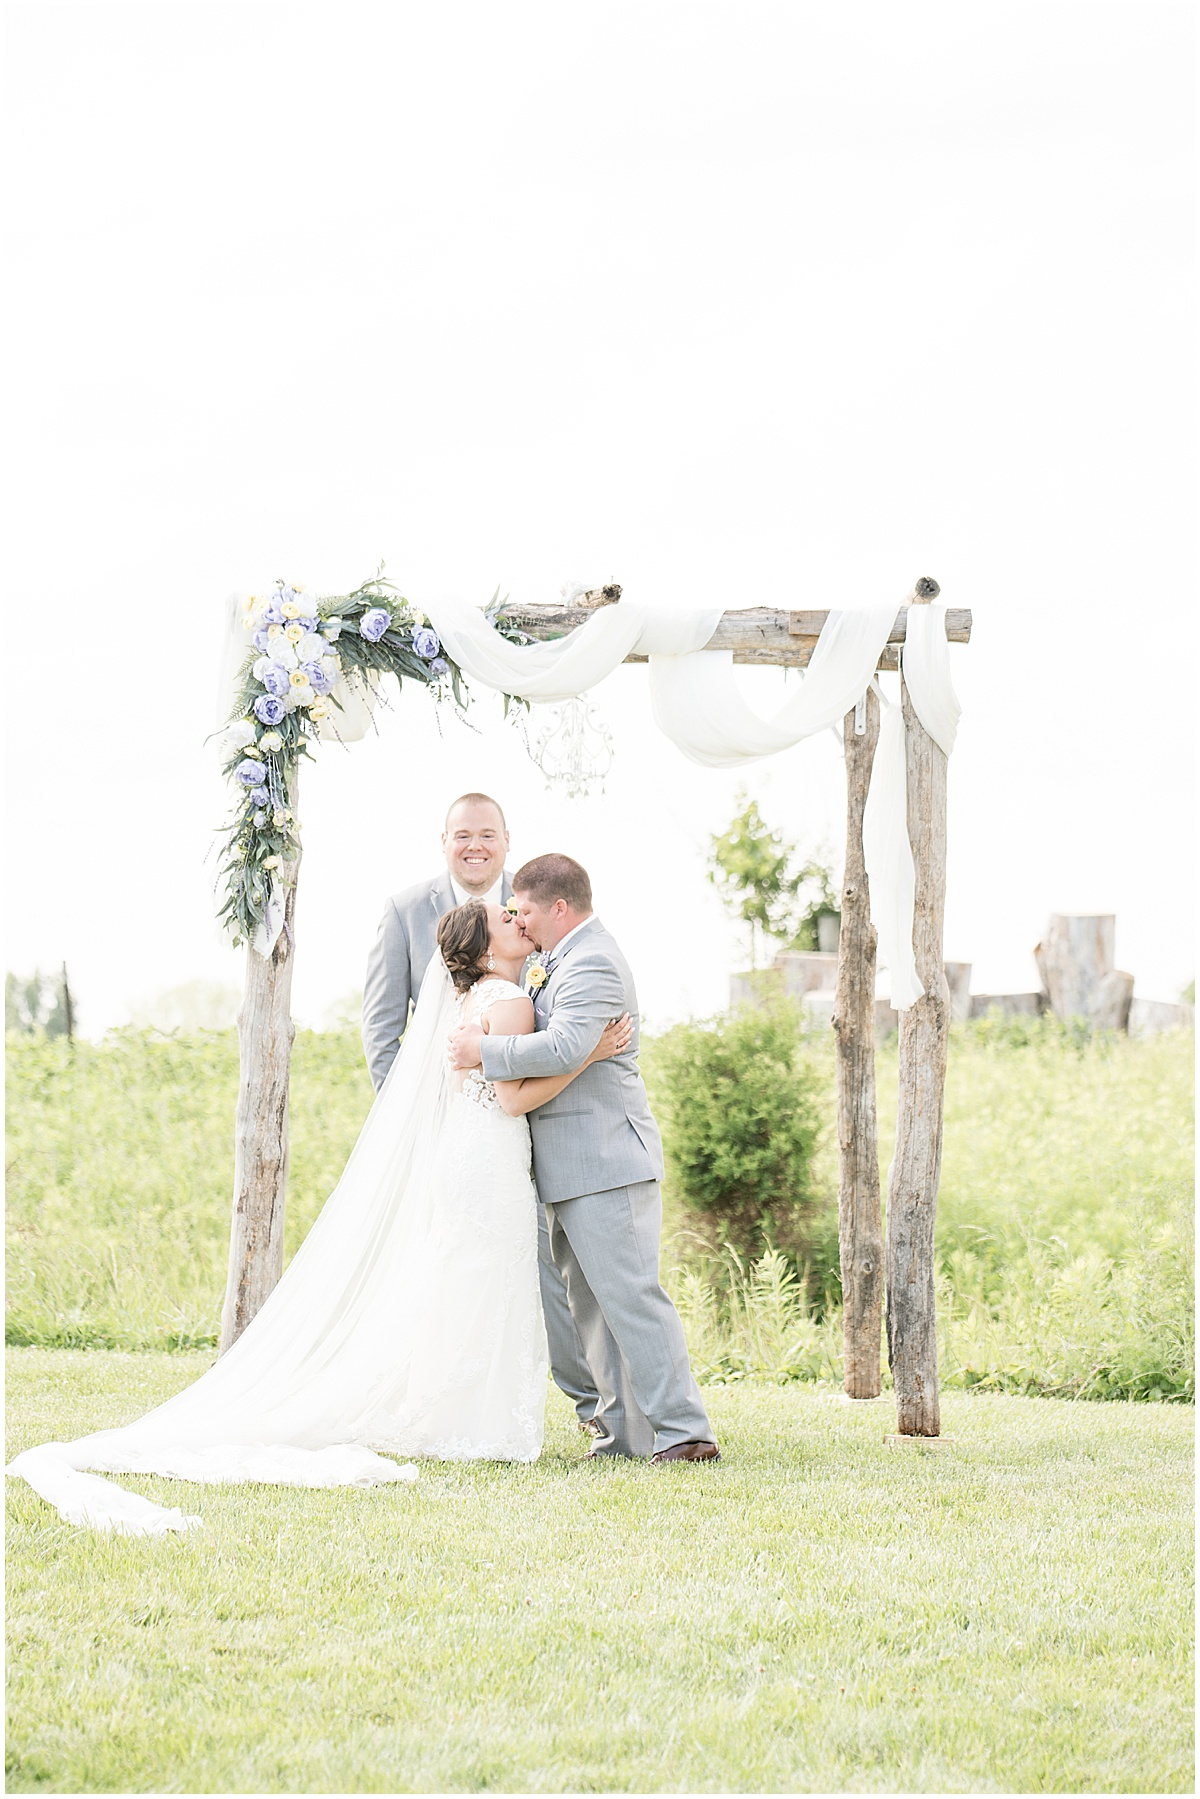 Wedding ceremony at Hunny Creek Haven in Waldron, Indiana